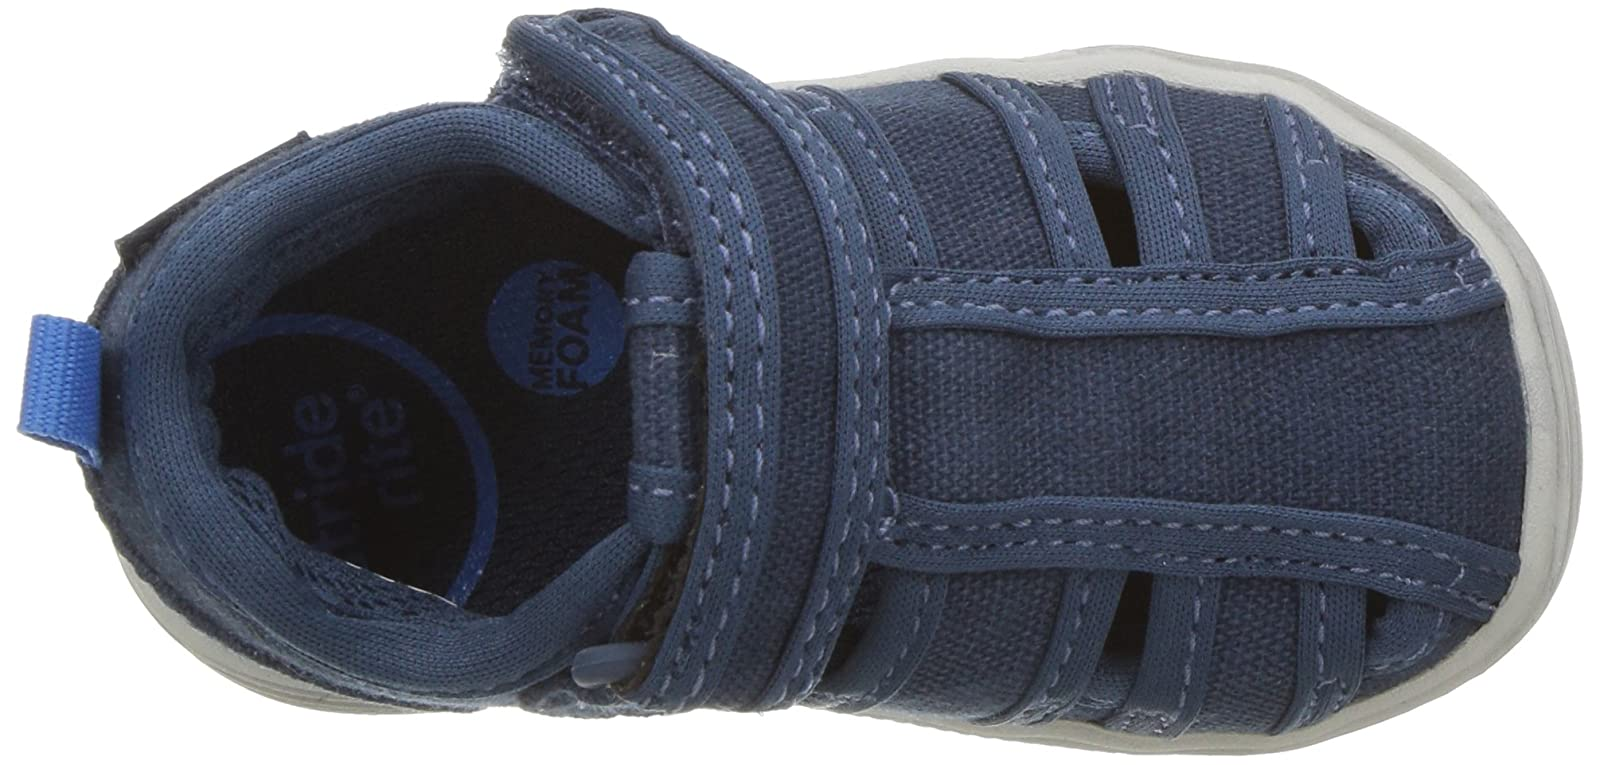 Stride Rite Sawyer Fisherman Sandal (Toddler) 1 M US Girl - 8